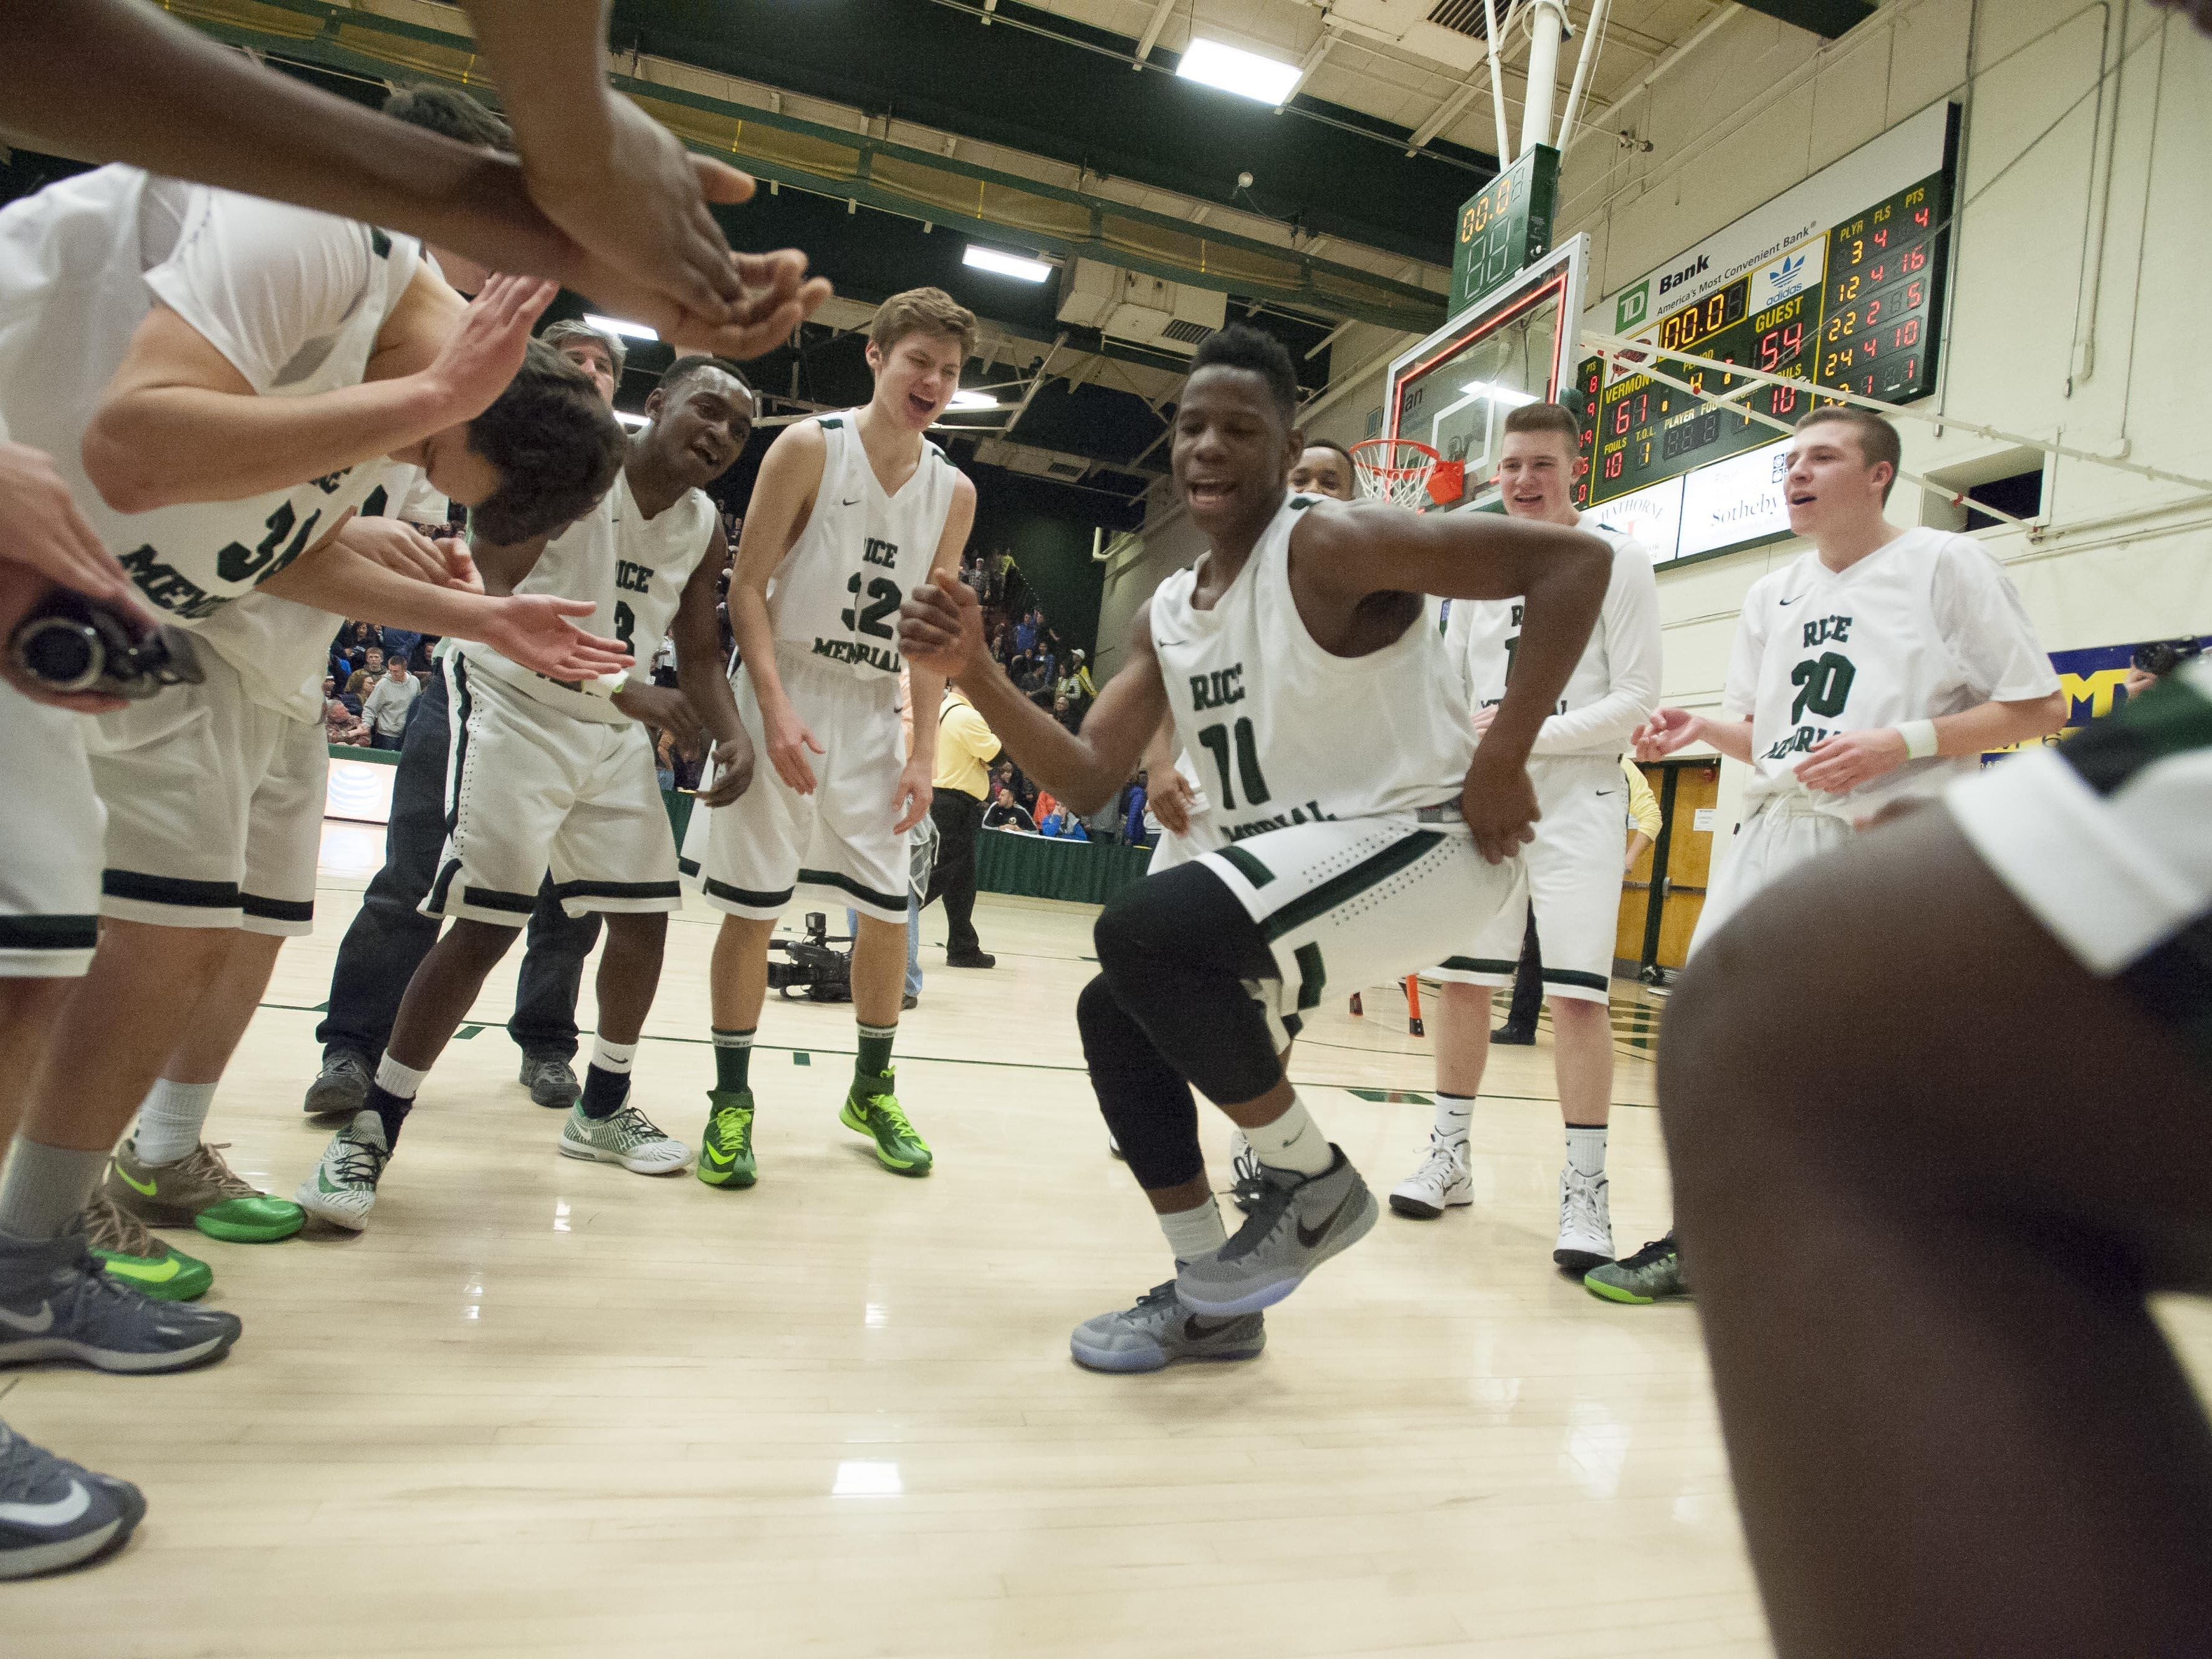 Rice's Ben Shungu dances with his teammates after defeating Burlington during the D-1 boys state basketball championship at Patrick Gymnasium in Burlington on Saturday, March 7, 2015.